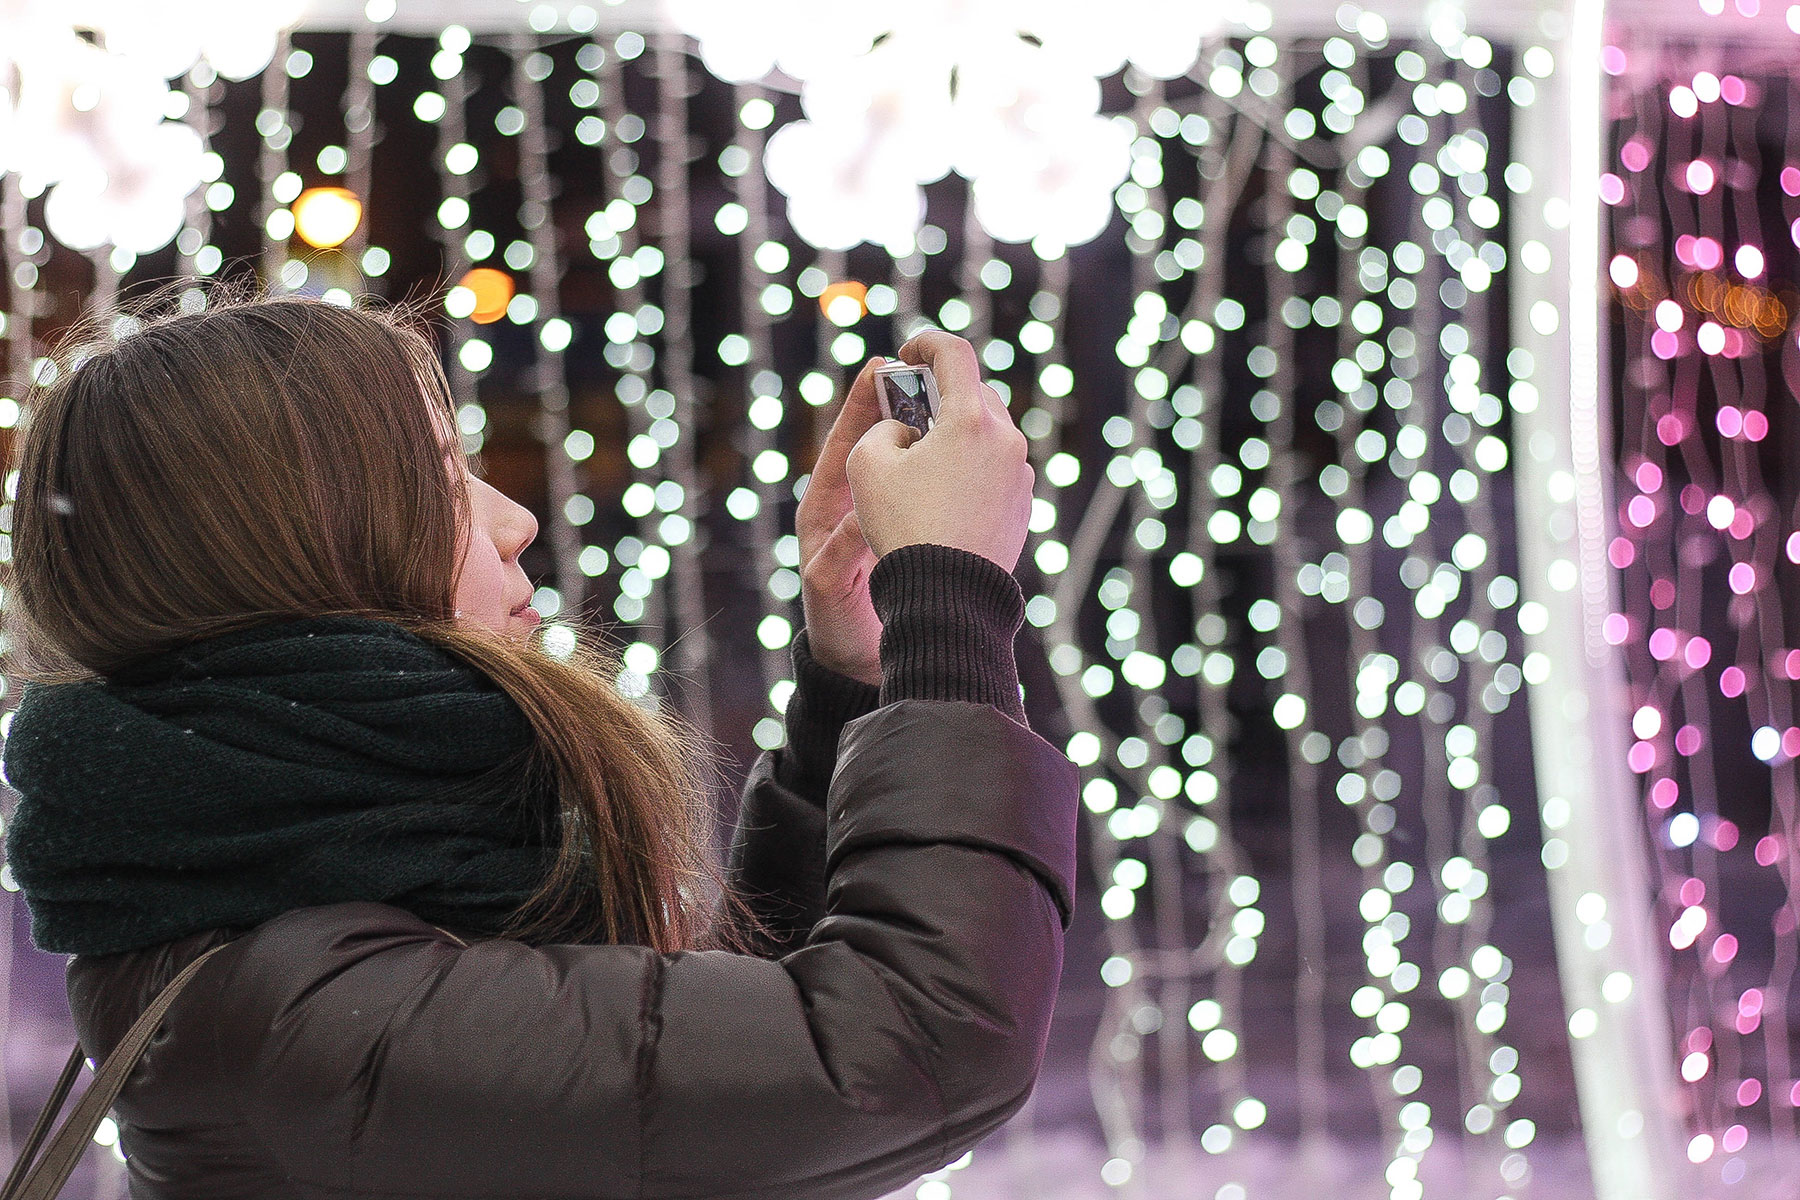 Infographic: The Selfie Syndrome and social narcissism | The